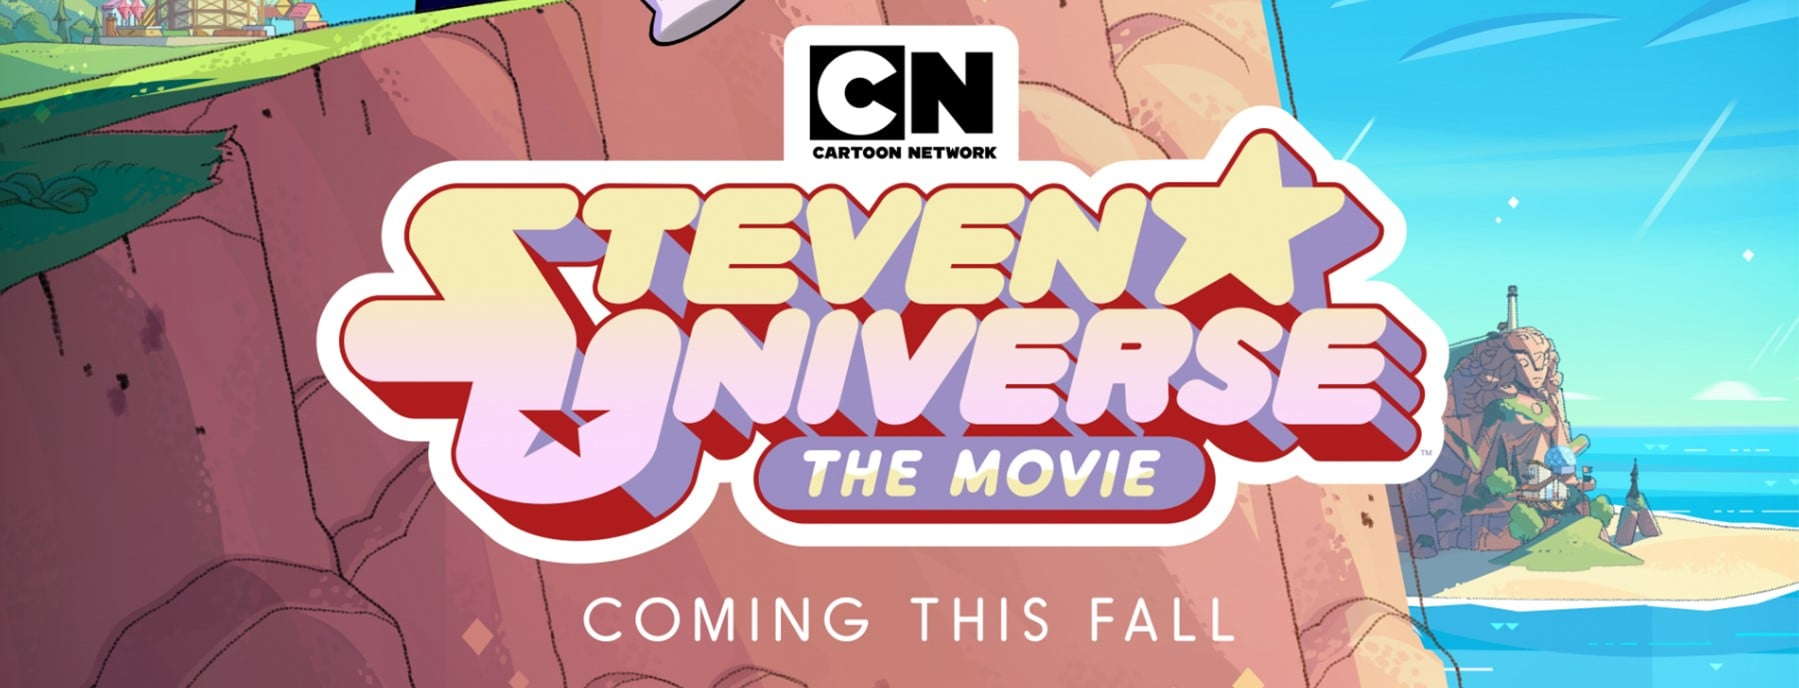 Steven Universe: The Movie Poster Reveals A New Menace To Beach City